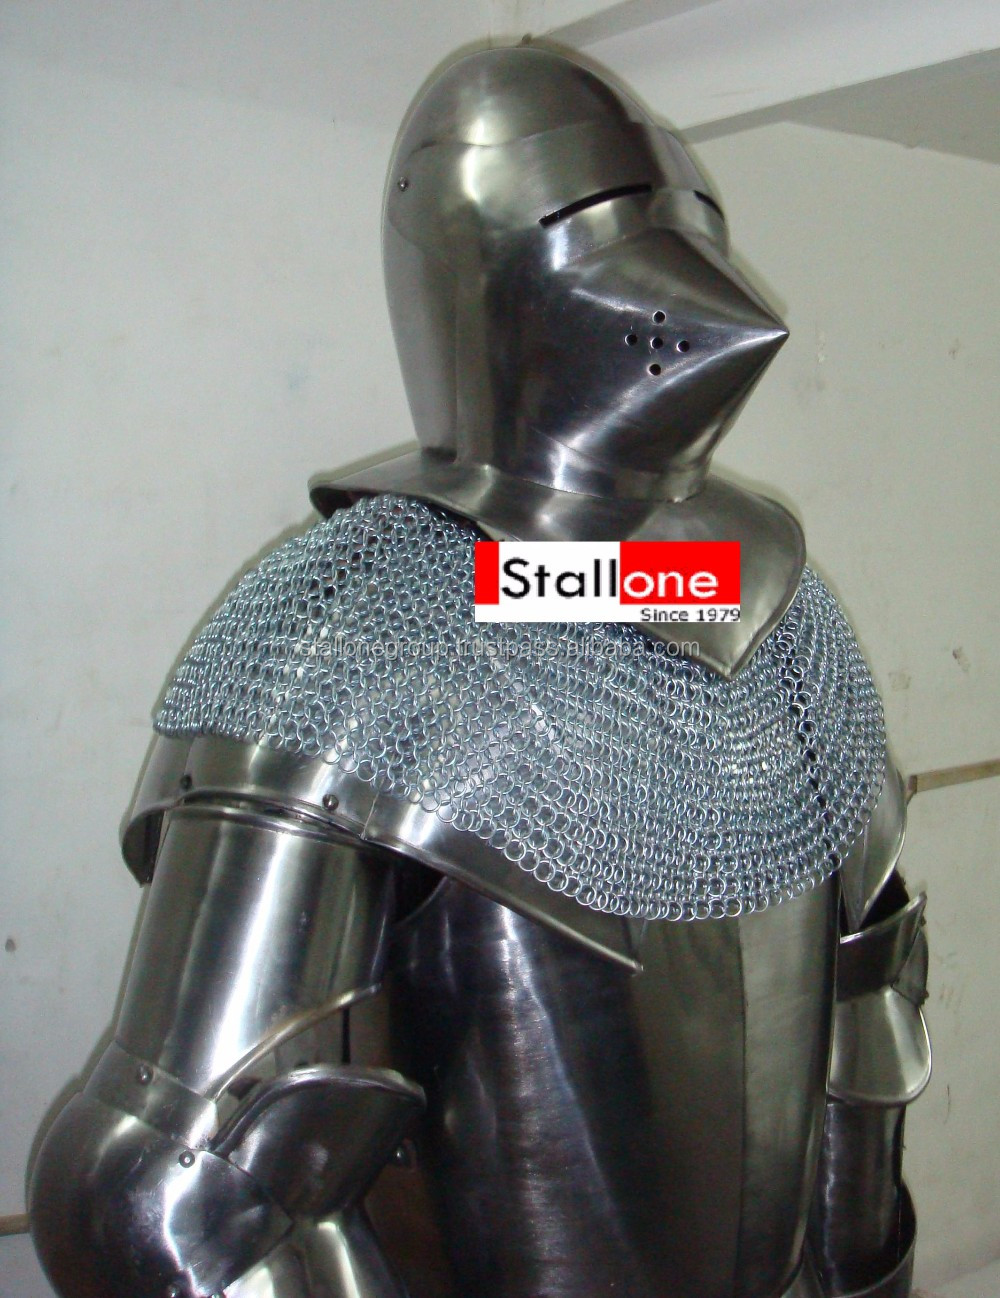 Lombardy style Suit of Armor